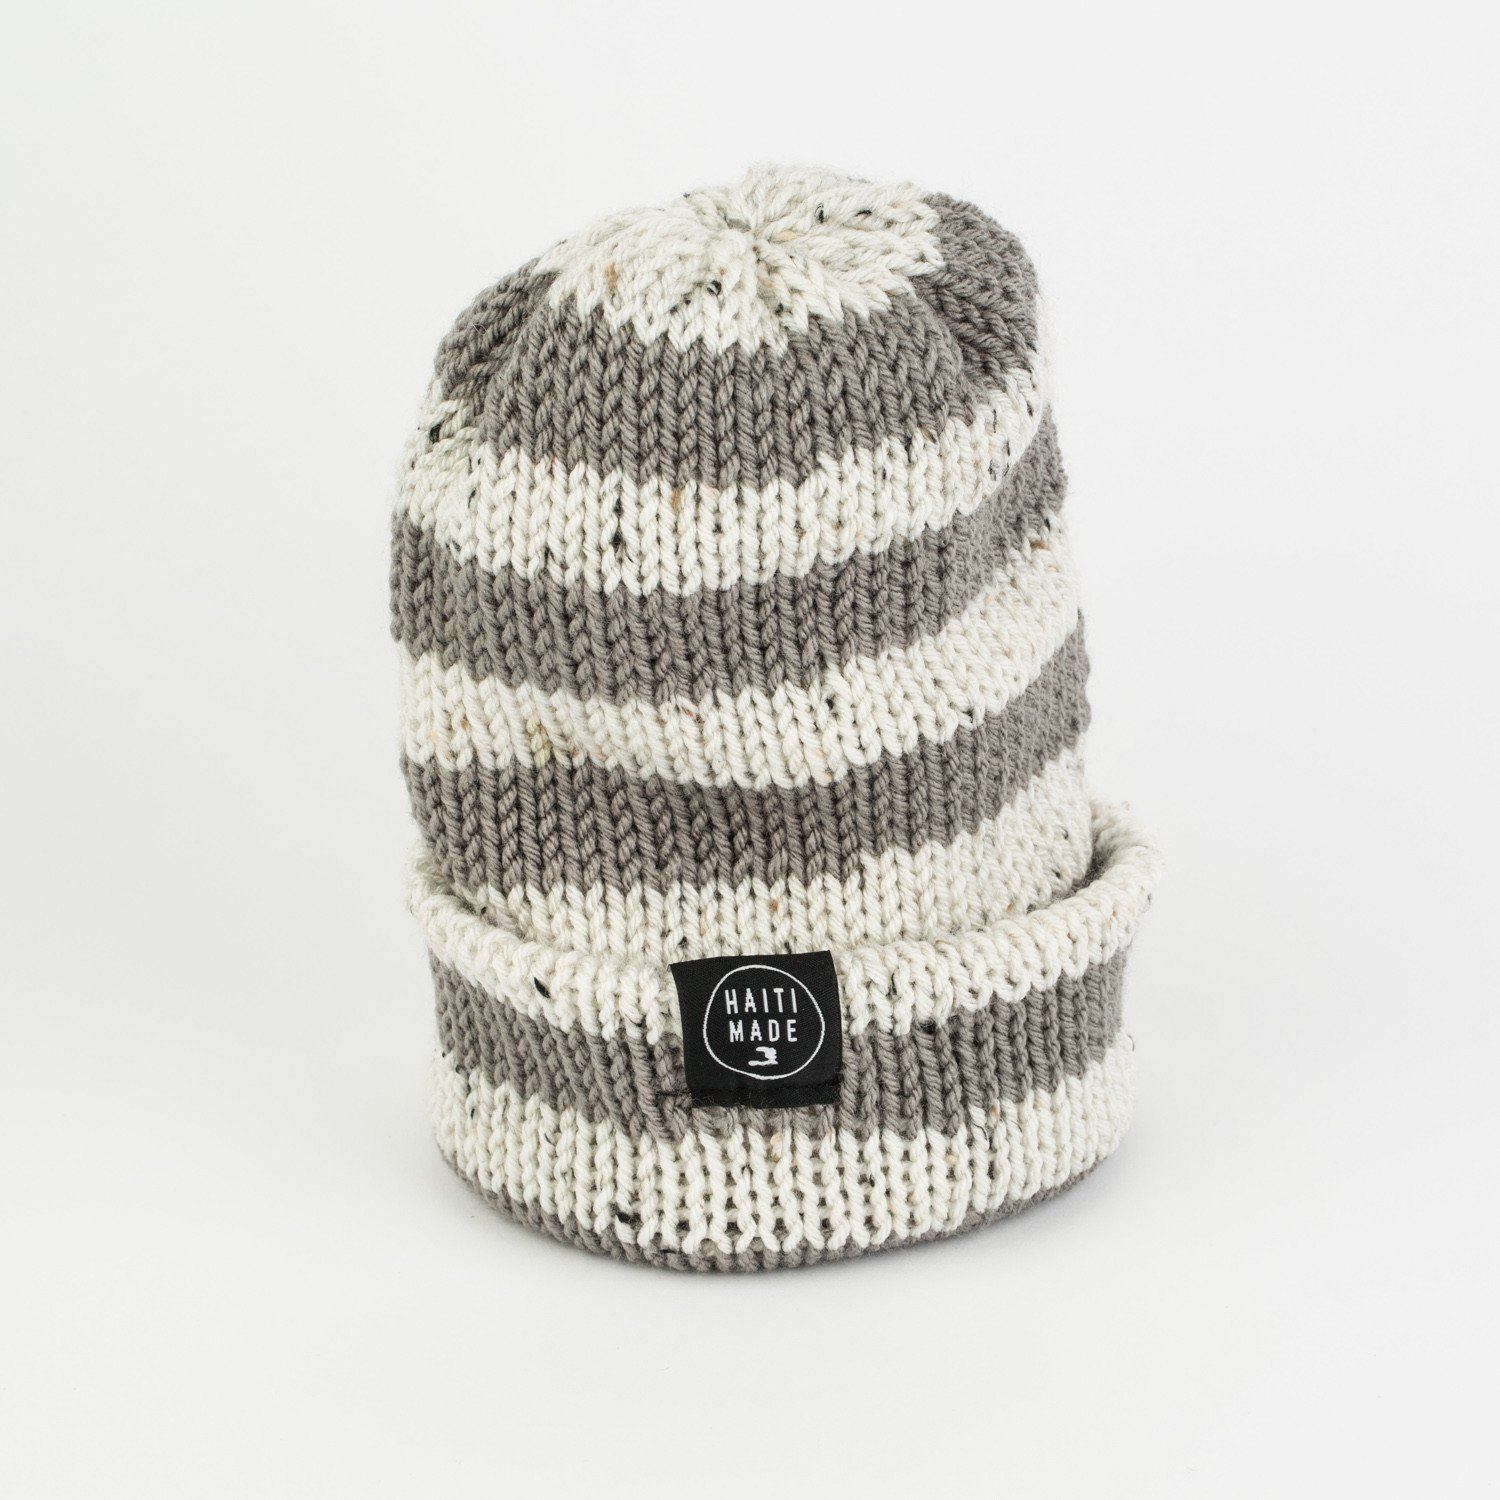 86d64b0ed2f A Guide to Ethical Beanies — The Honest Consumer